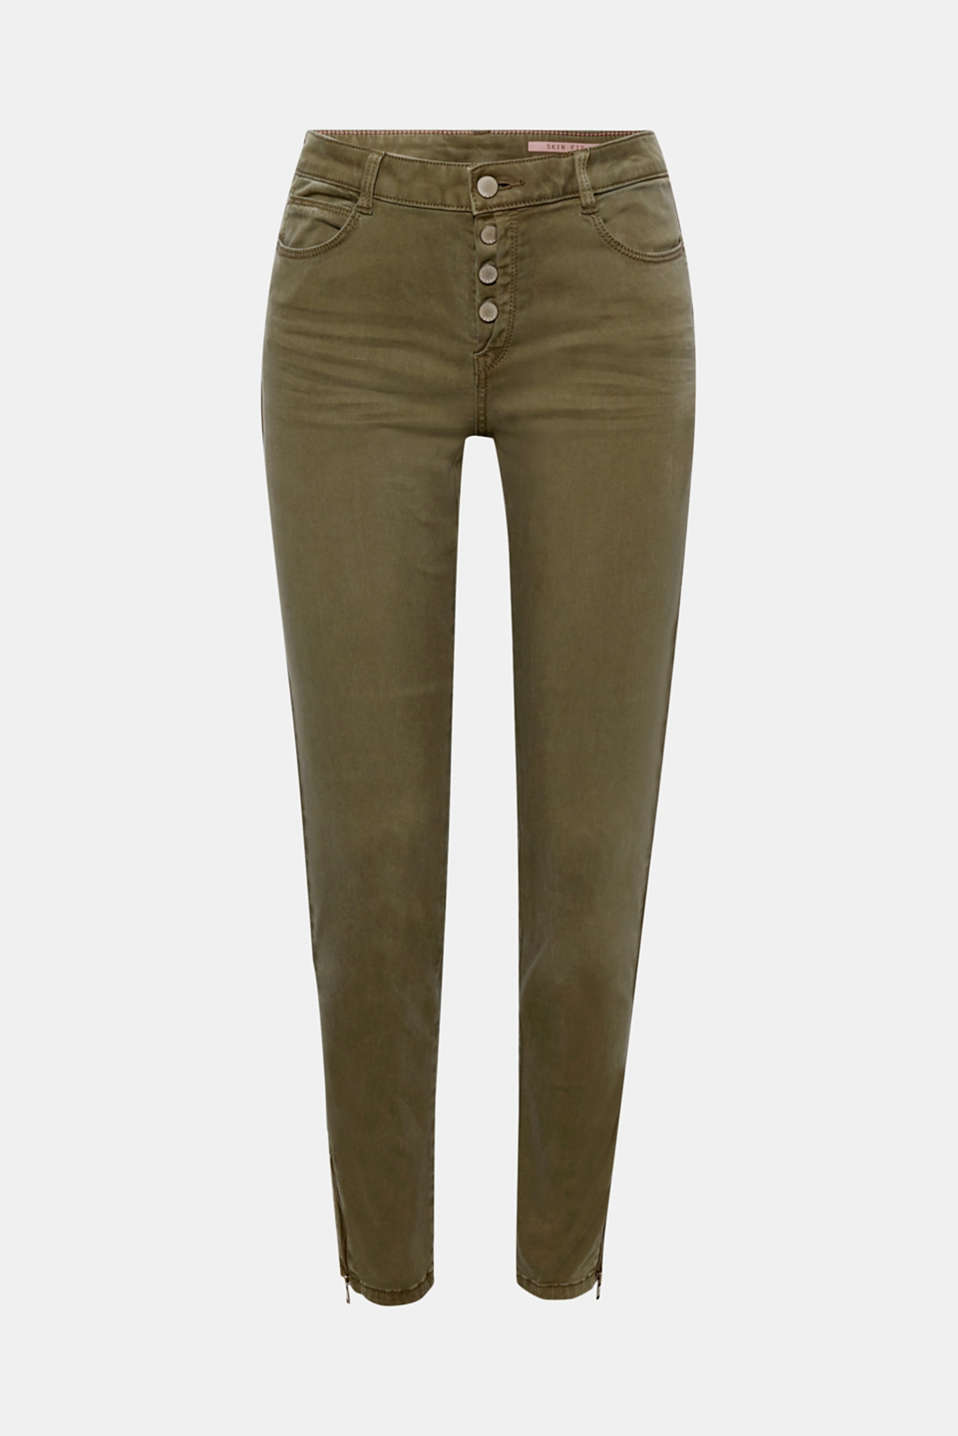 Delightfully soft with a cool button placket, sporty hem zips and a casual garment wash, these stretch trousers offer everything a girl could want!